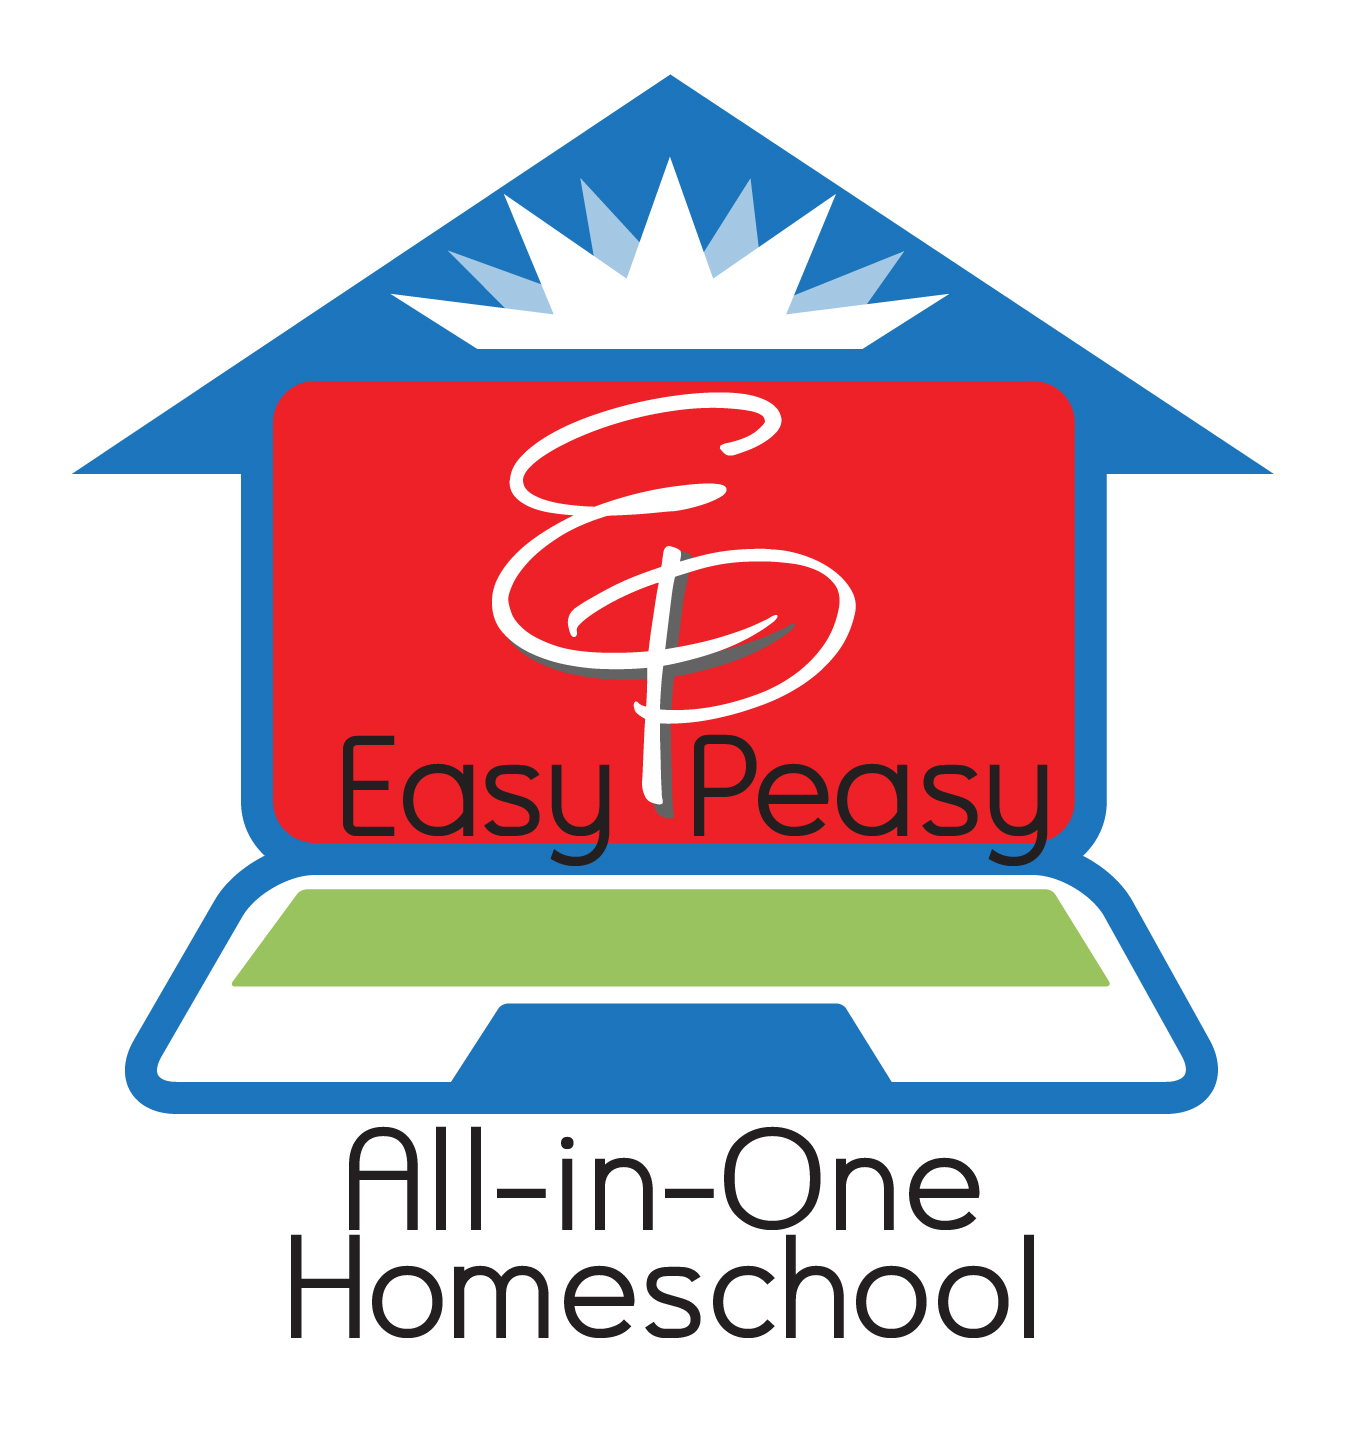 Online christian homeschool options